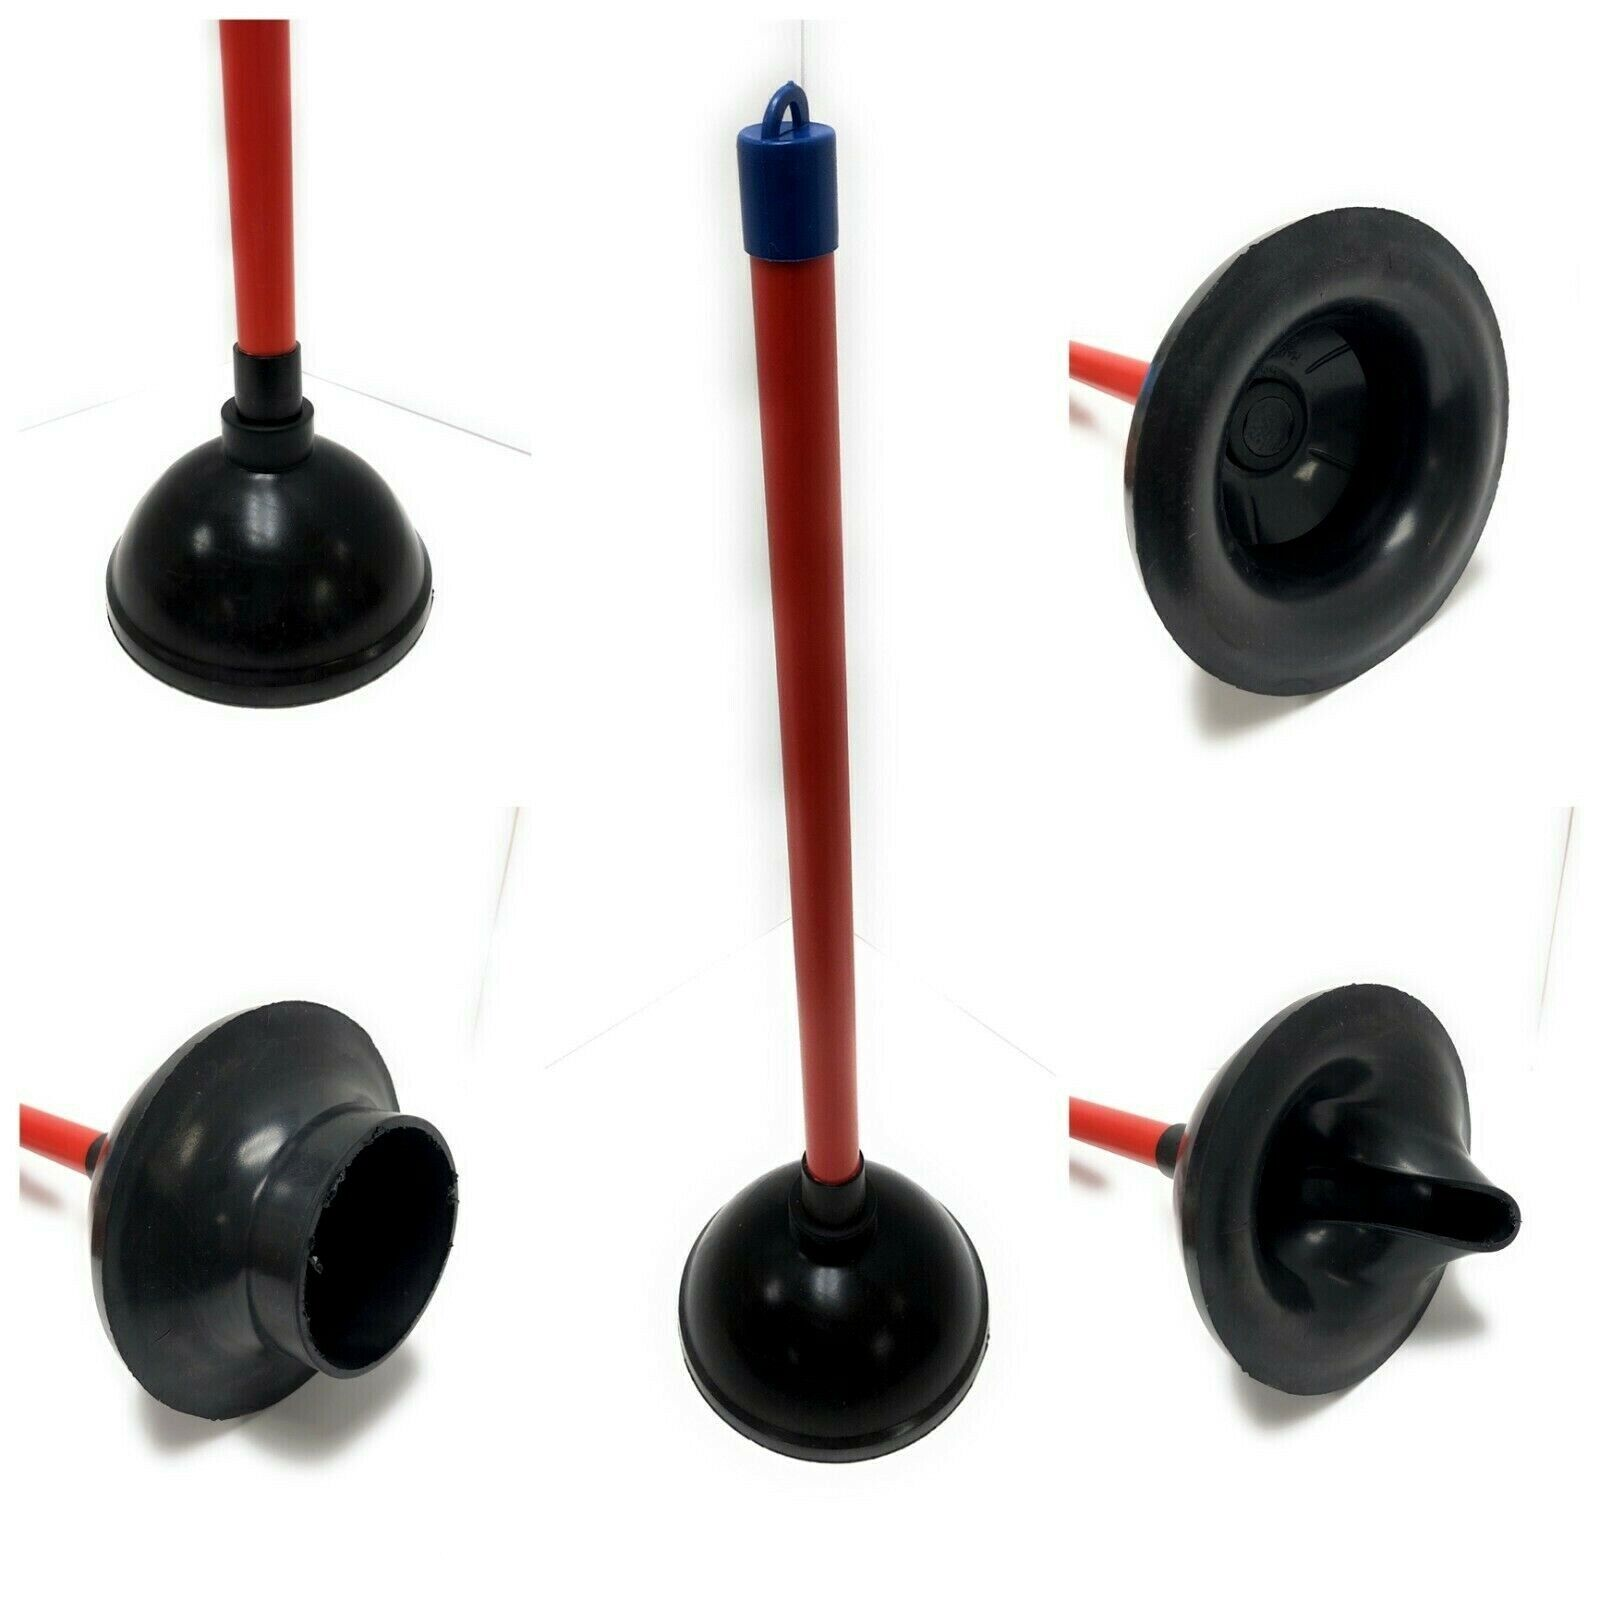 Commercial Heavy Duty Bathroom Toilet Bowl Plunger Cup W/ 20